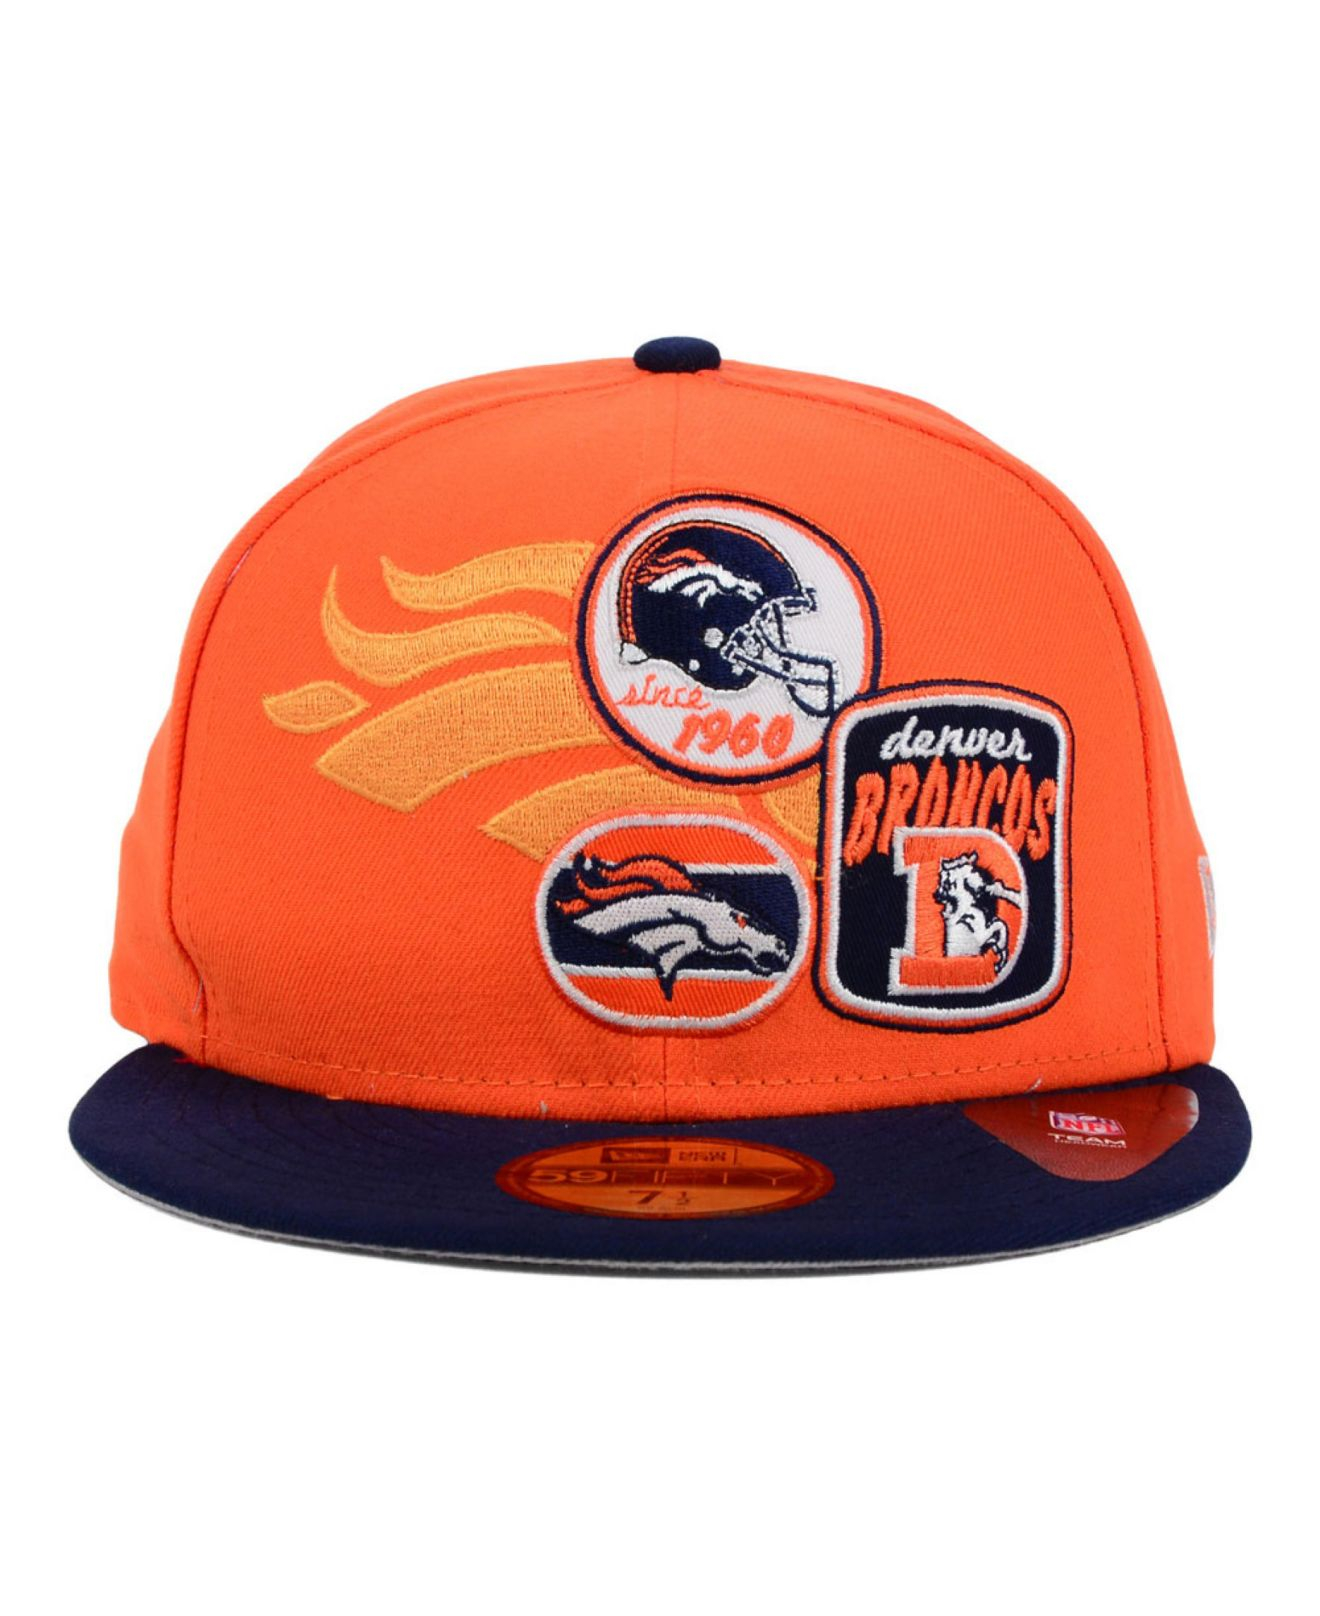 24812cb7a09 canada denver broncos new era nfl patch batcher 59fifty cap orange navy  9ea48 56674